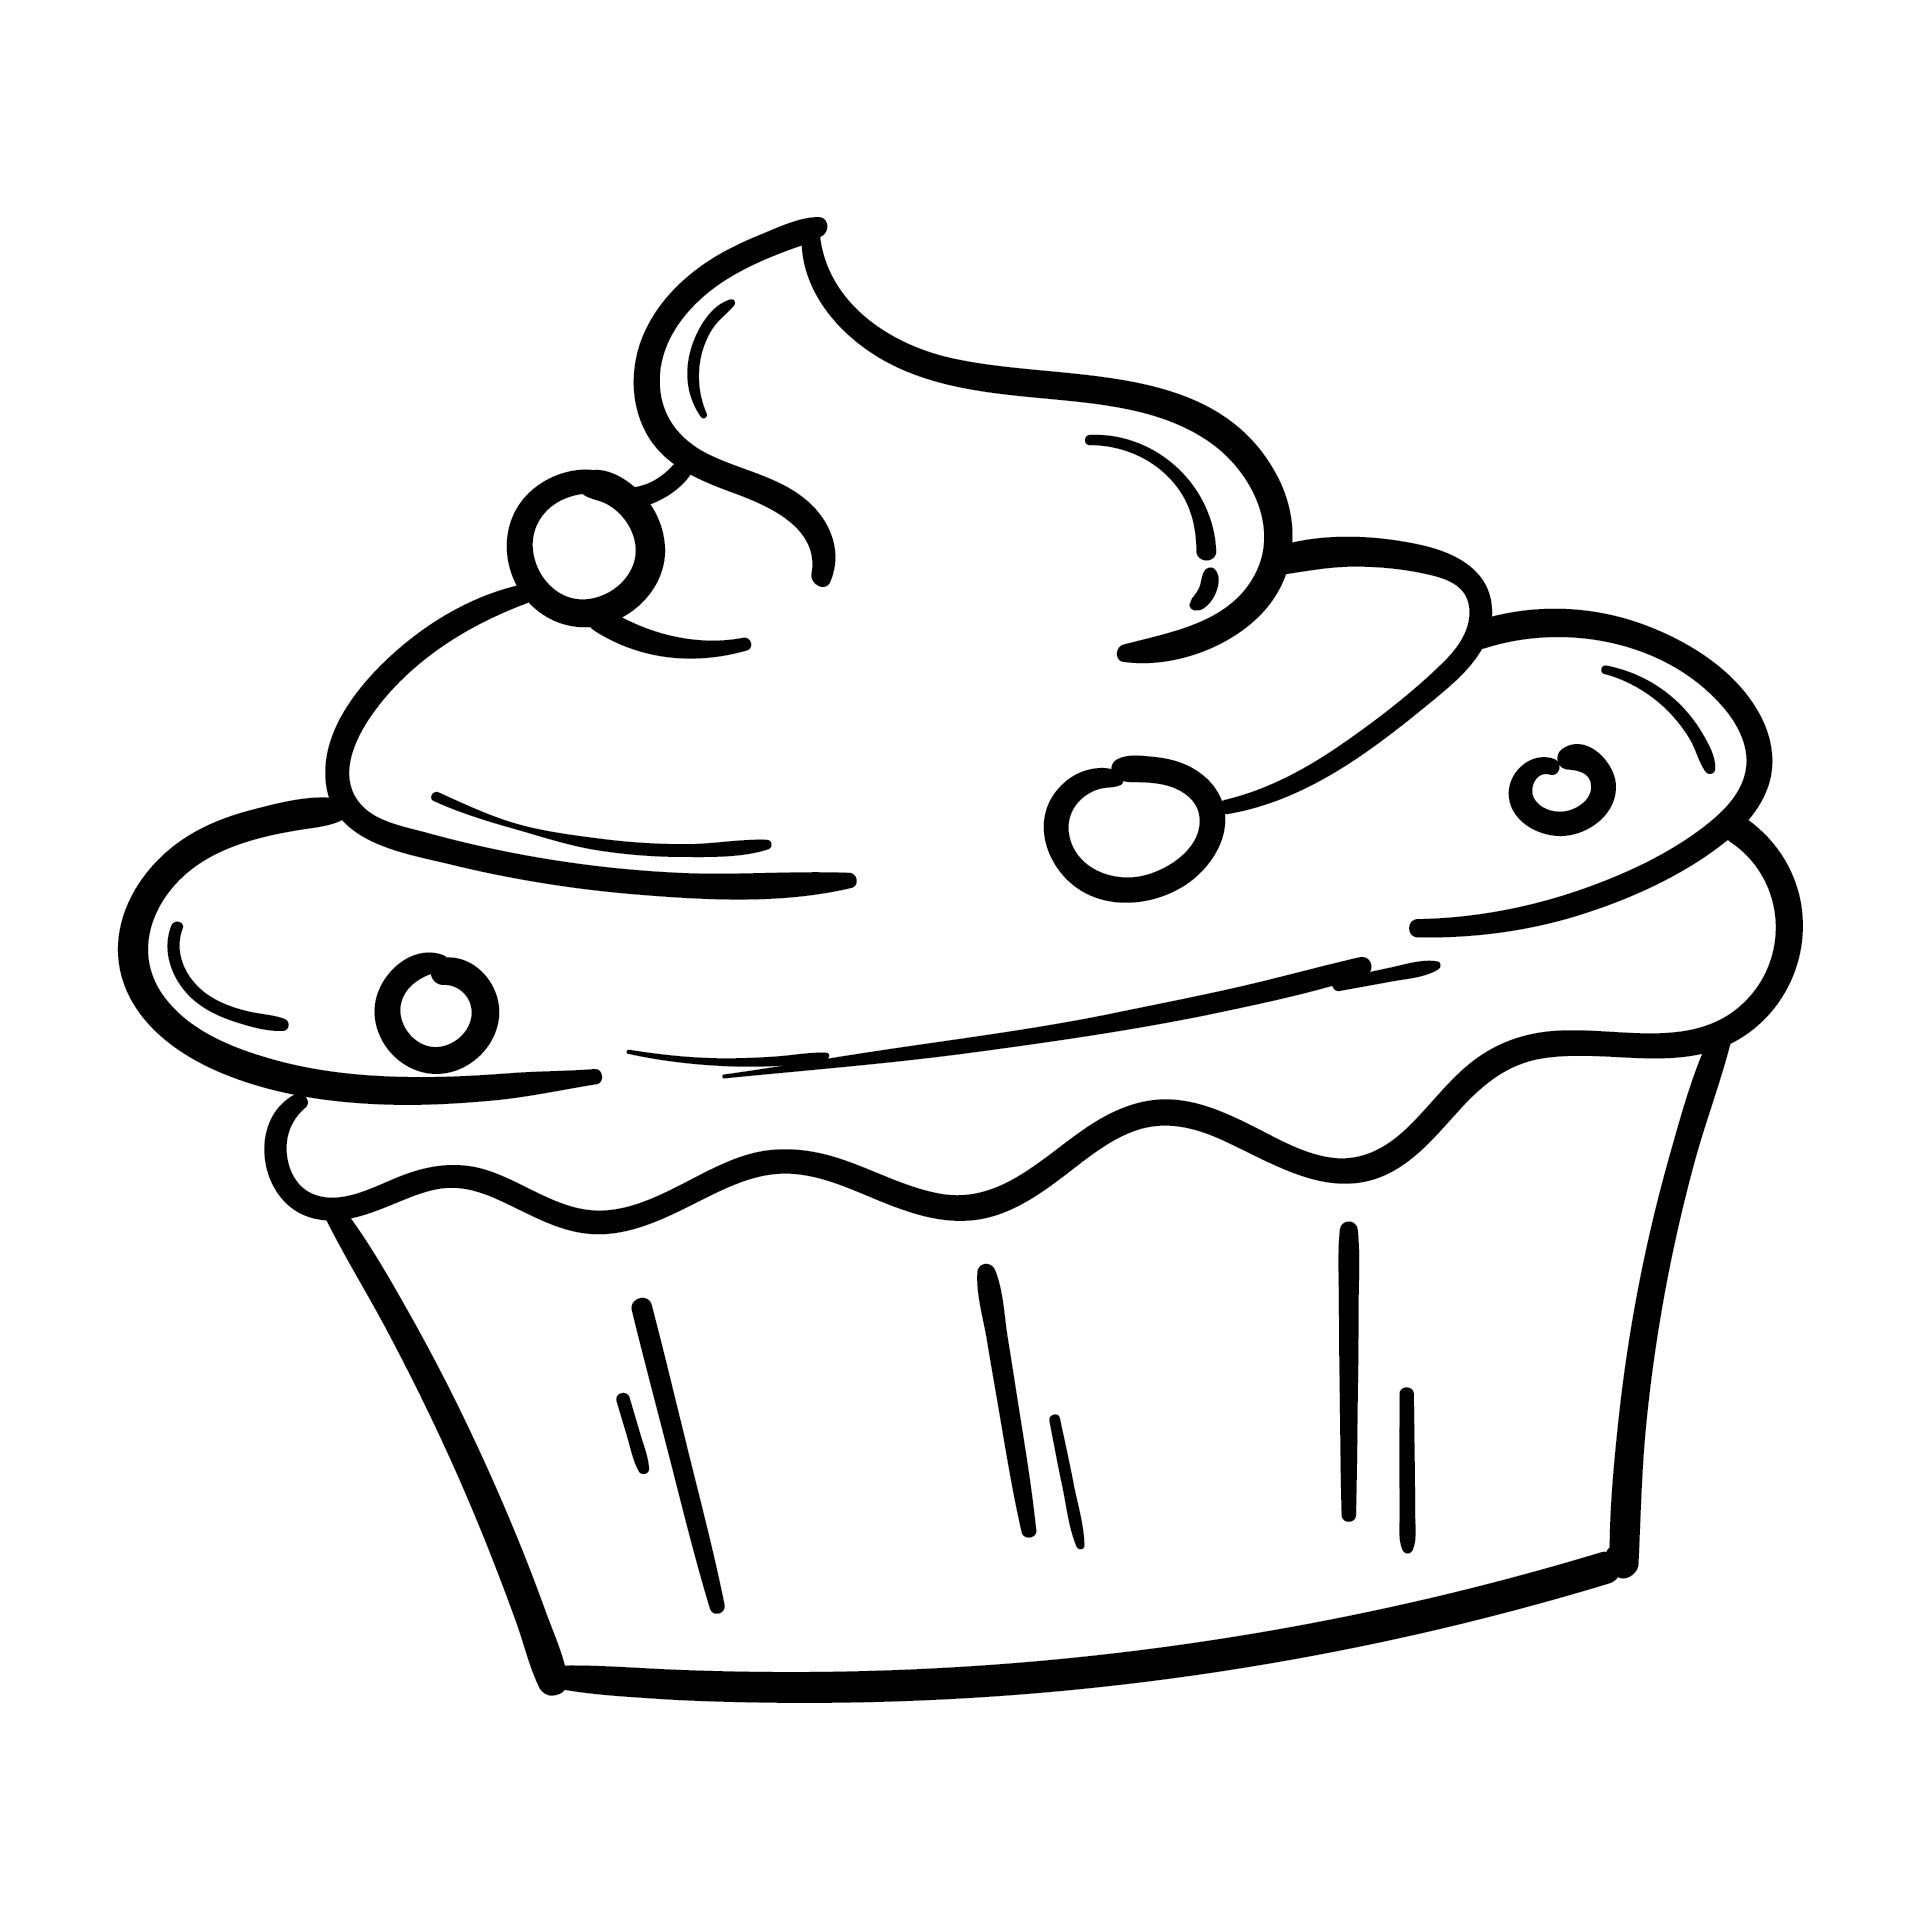 Black and White Cupcake Outline Clip Art